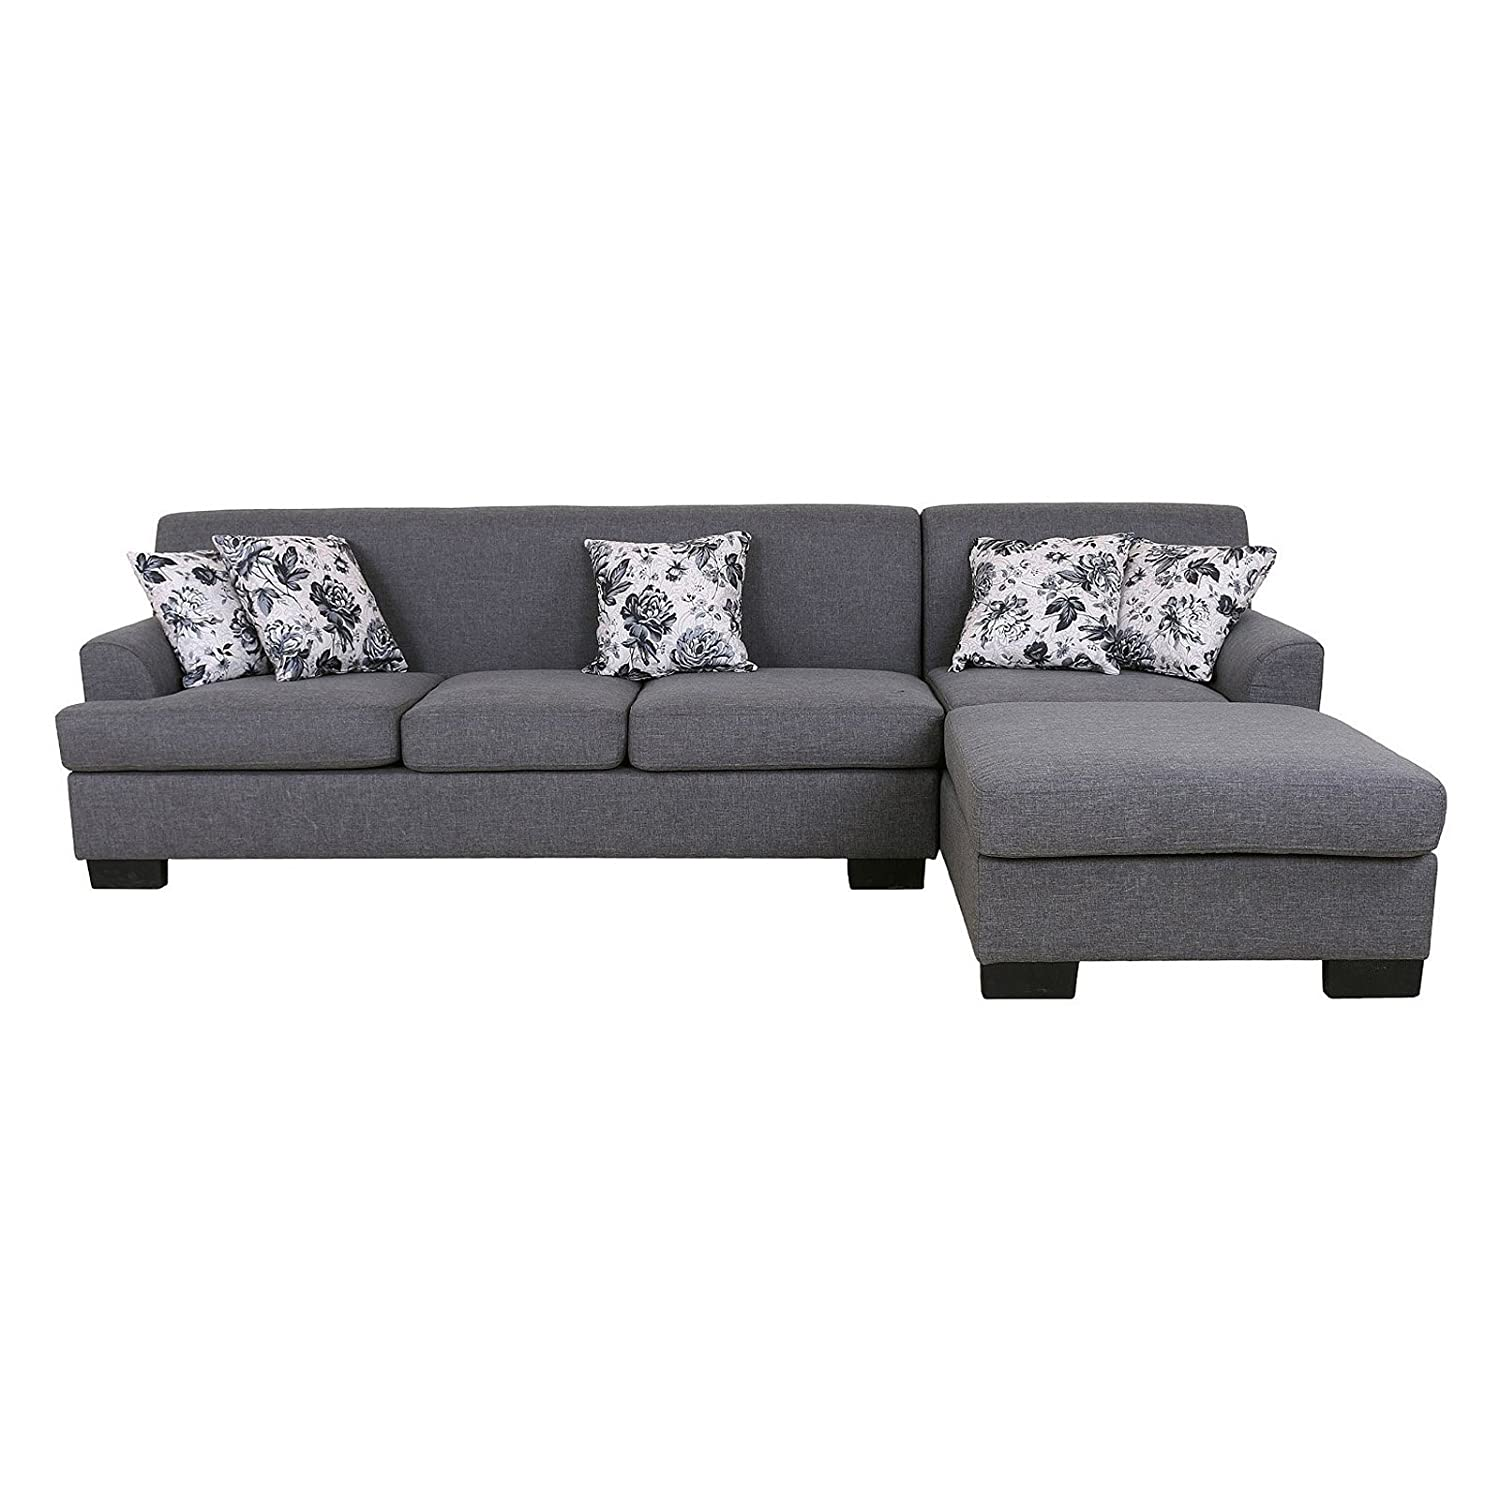 Amazon U S Pride Furniture 2 Piece Sectional Sofa with